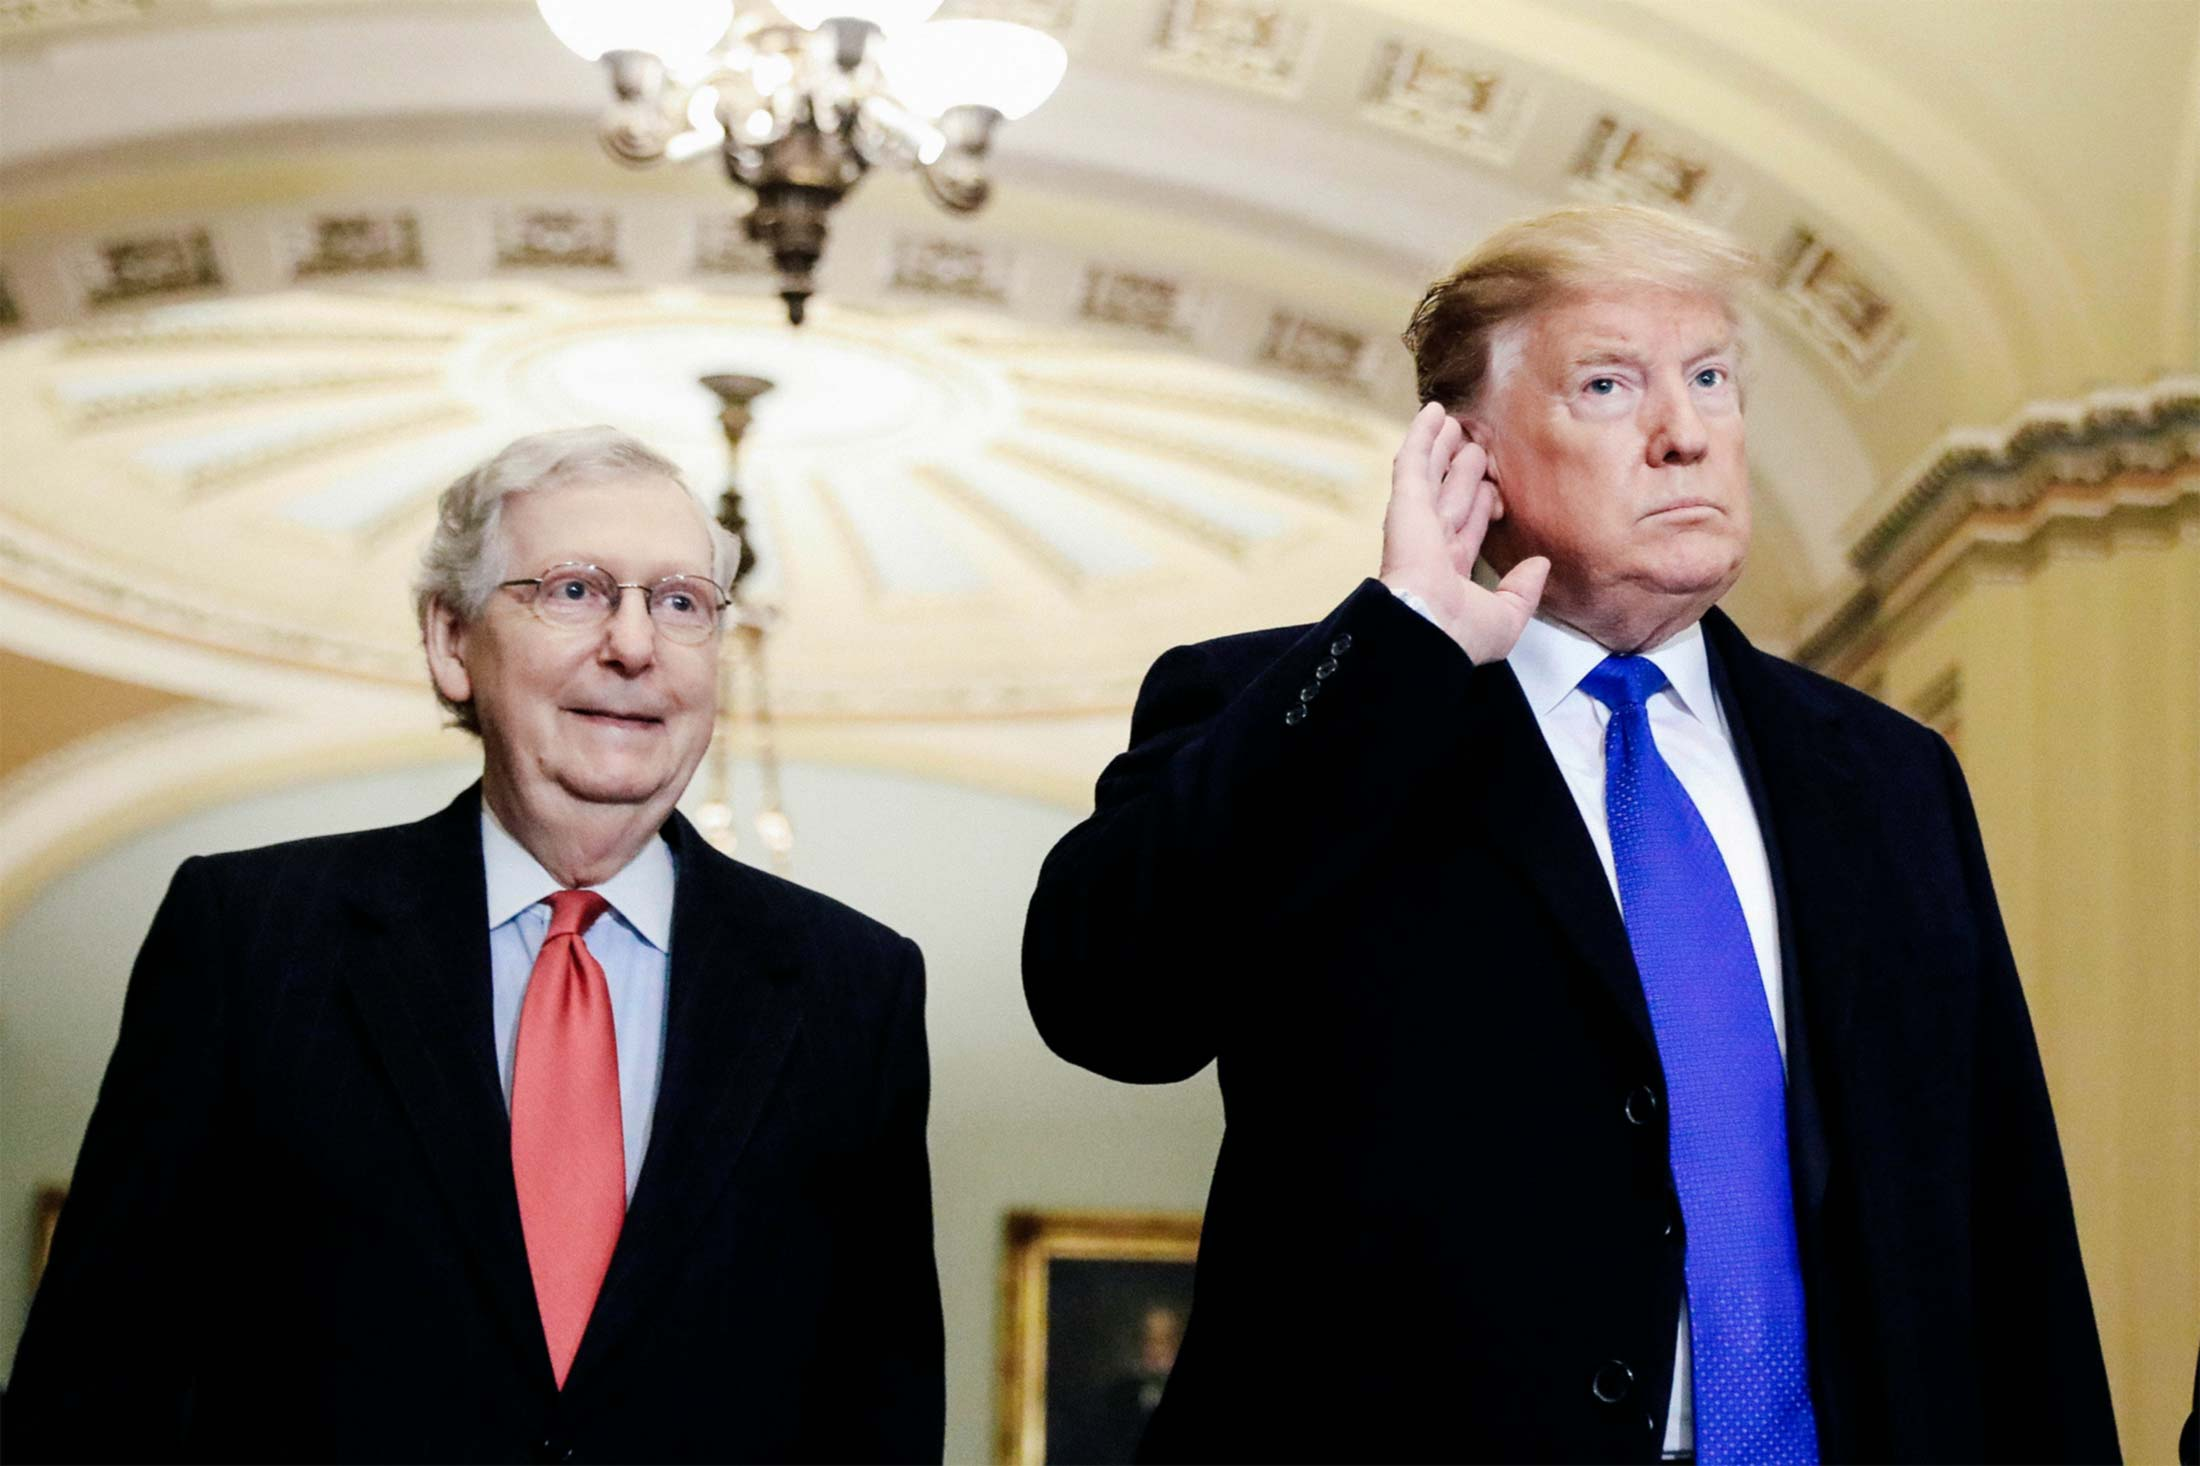 President Donald Trump listens to questions from reporters next to Senate Majority Leader Mitch McConnell.